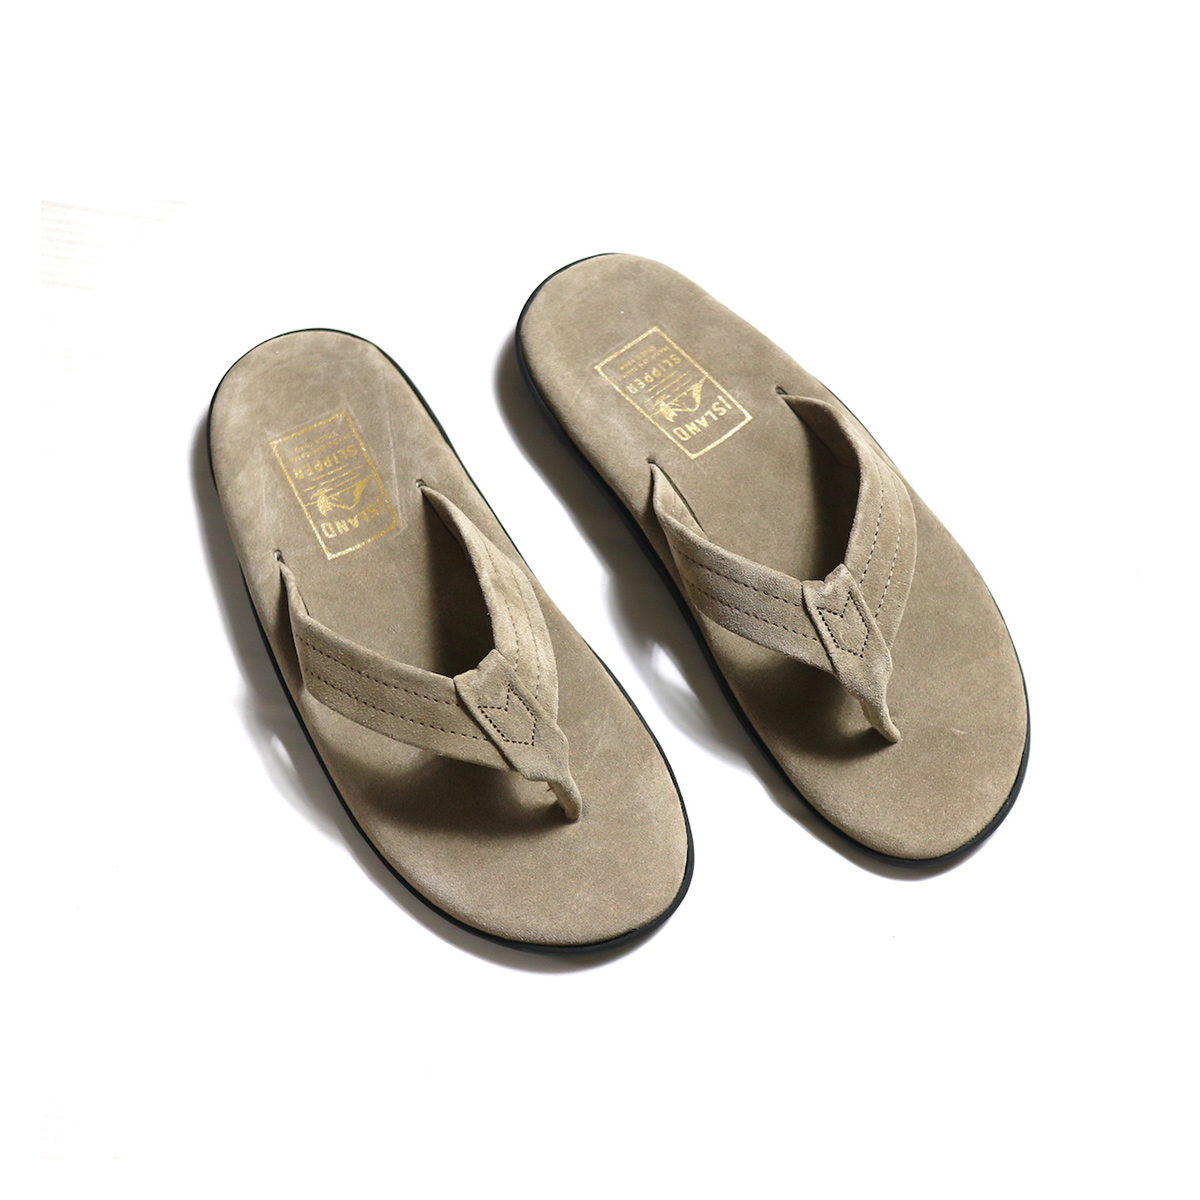 ISLAND SLIPPER / PB203 -Elephant